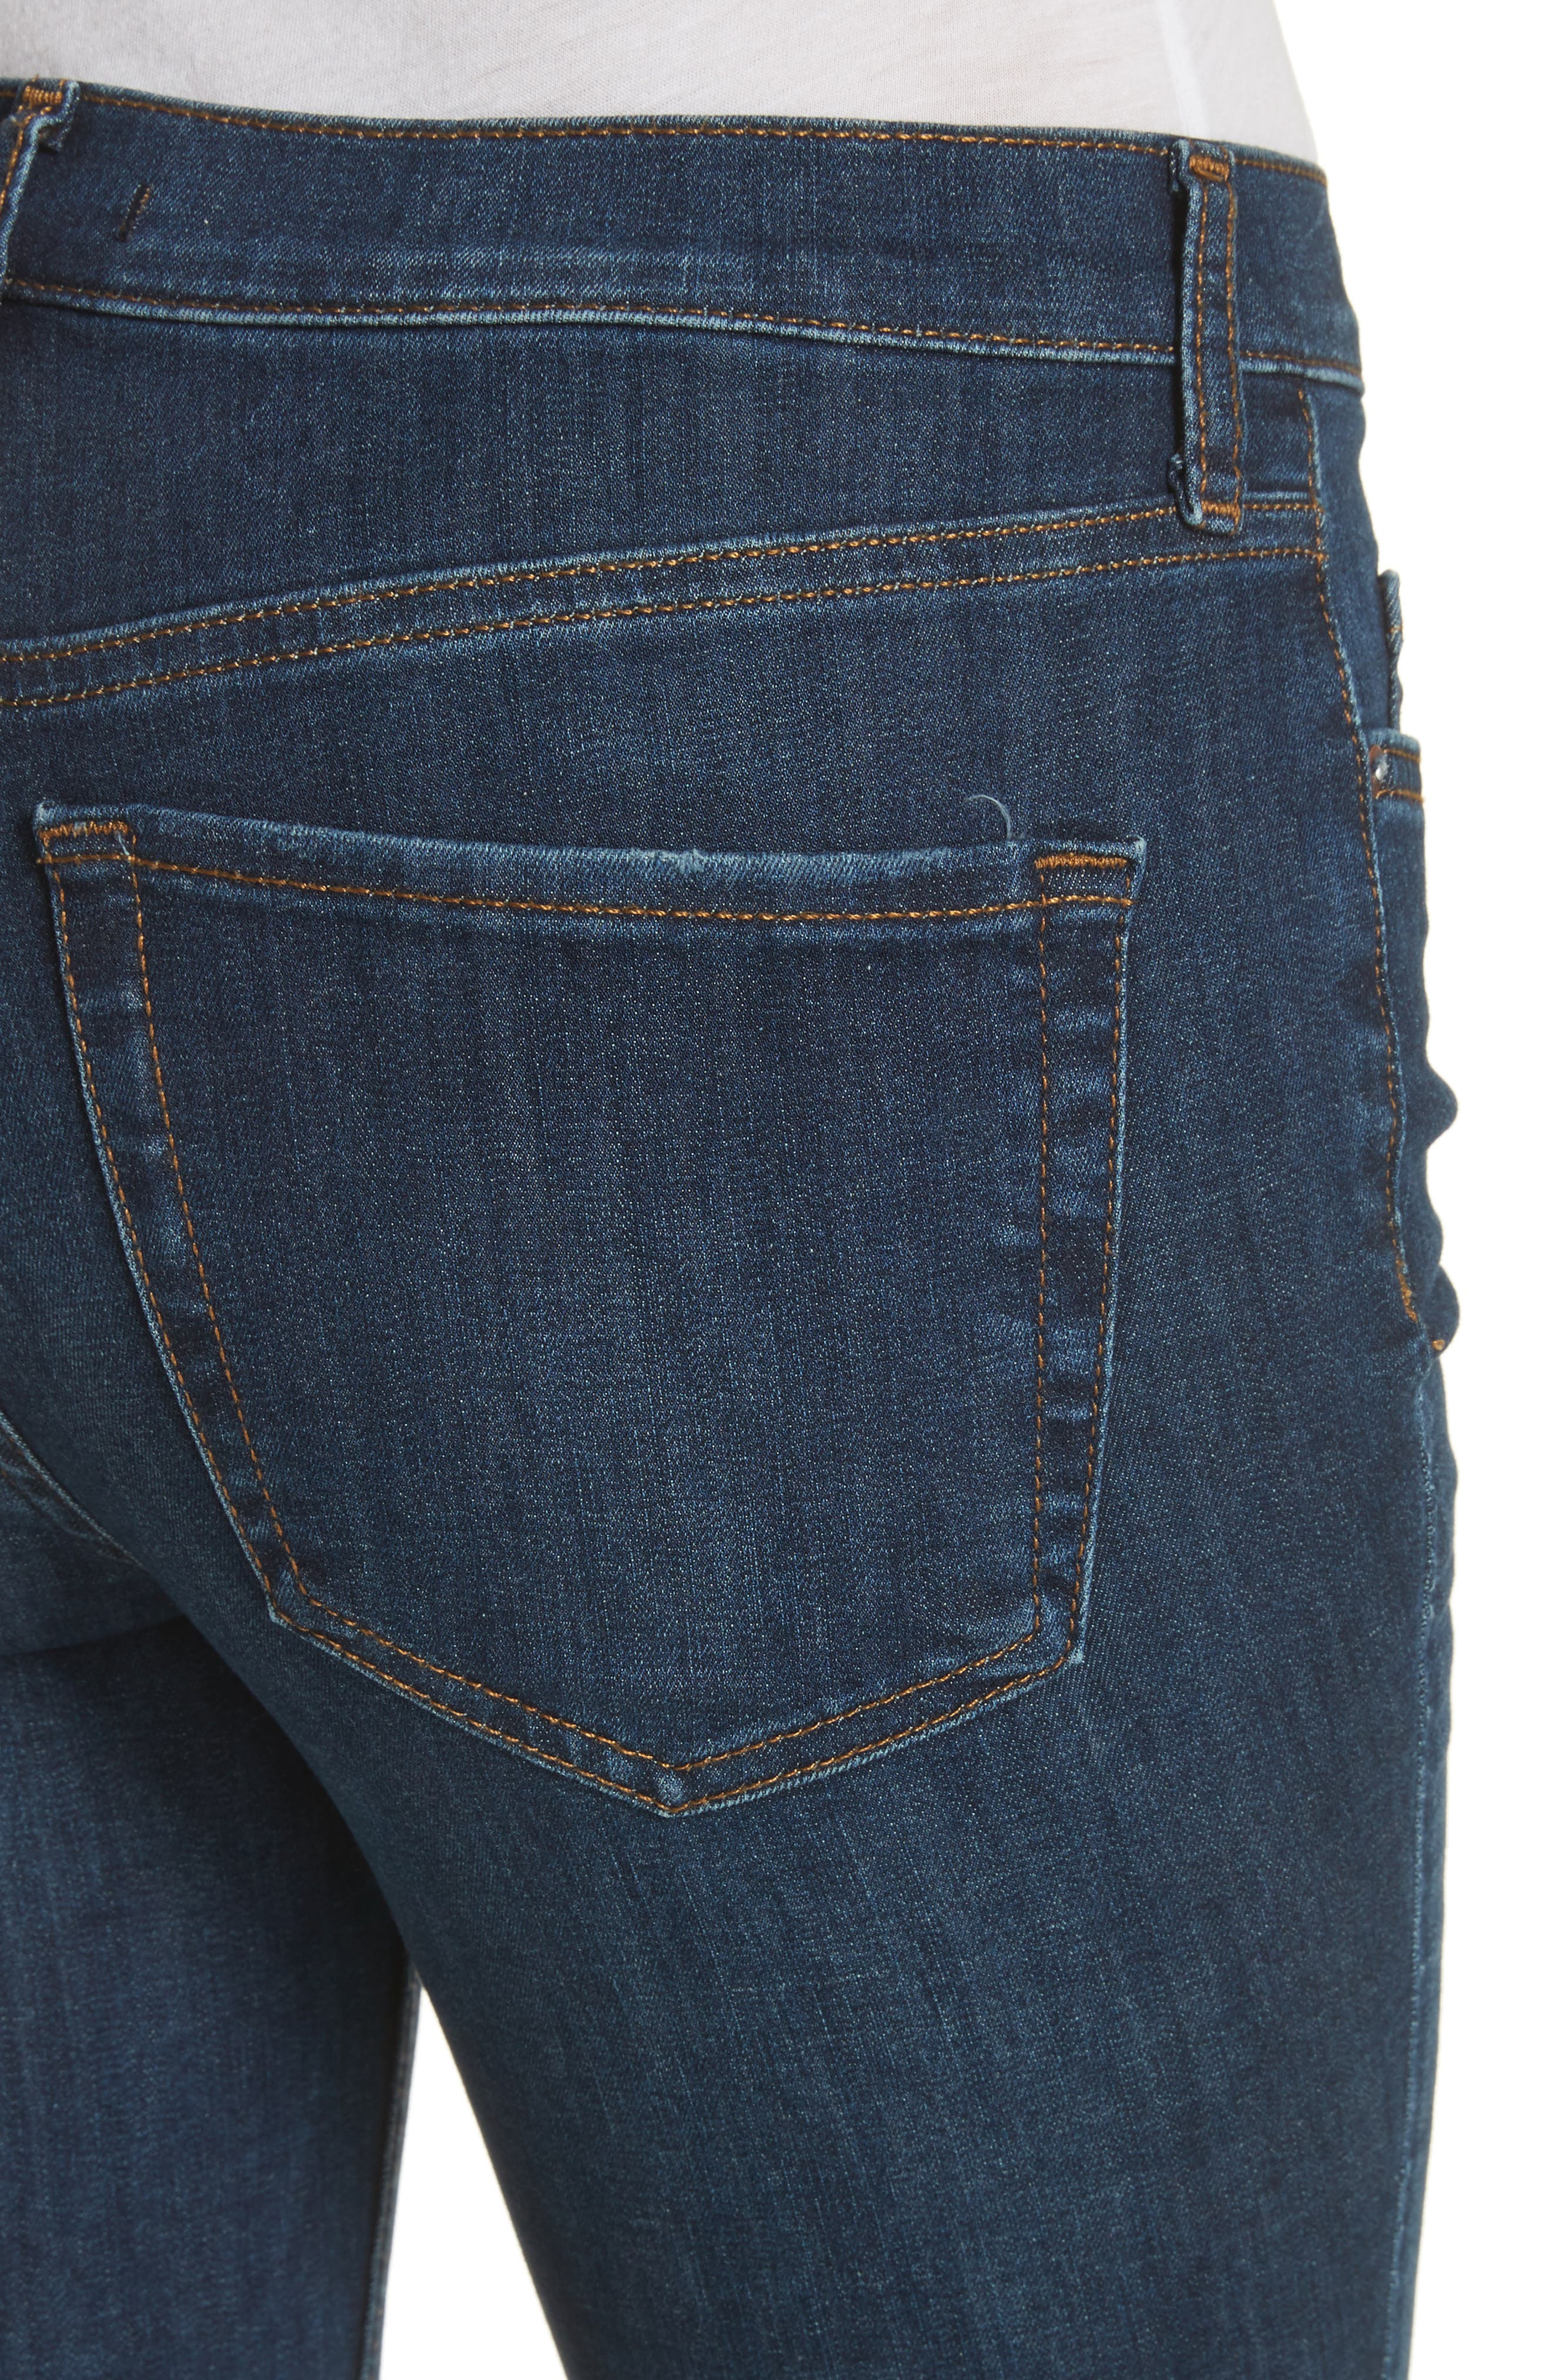 FREE PEOPLE, We the Free by Free People High Waist Ankle Skinny Jeans, Alternate thumbnail 5, color, DARK BLUE